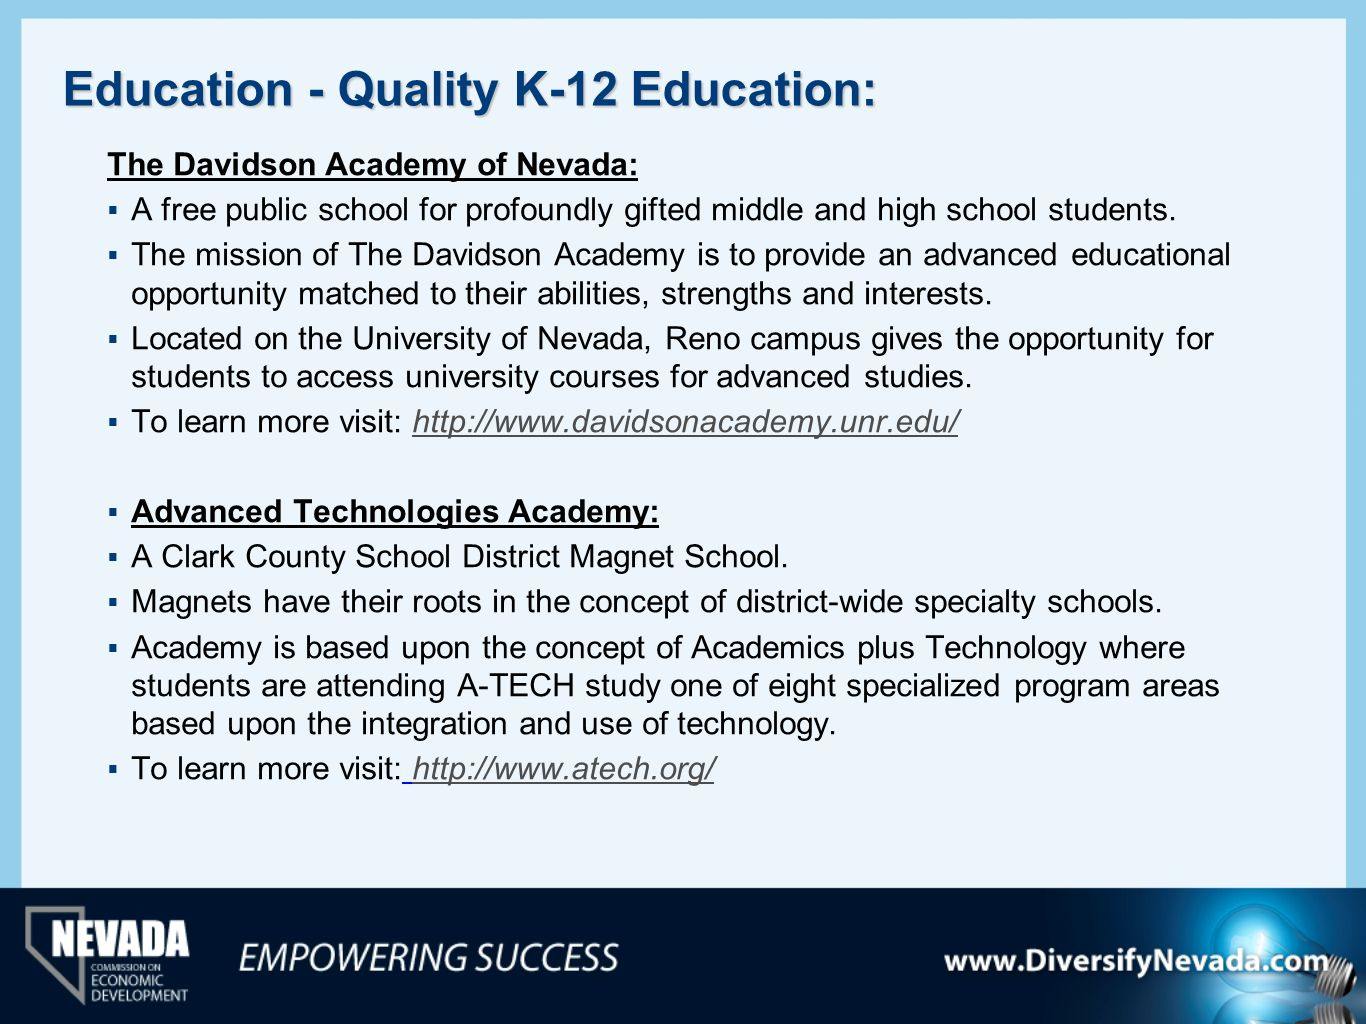 Education - Quality K-12 Education: